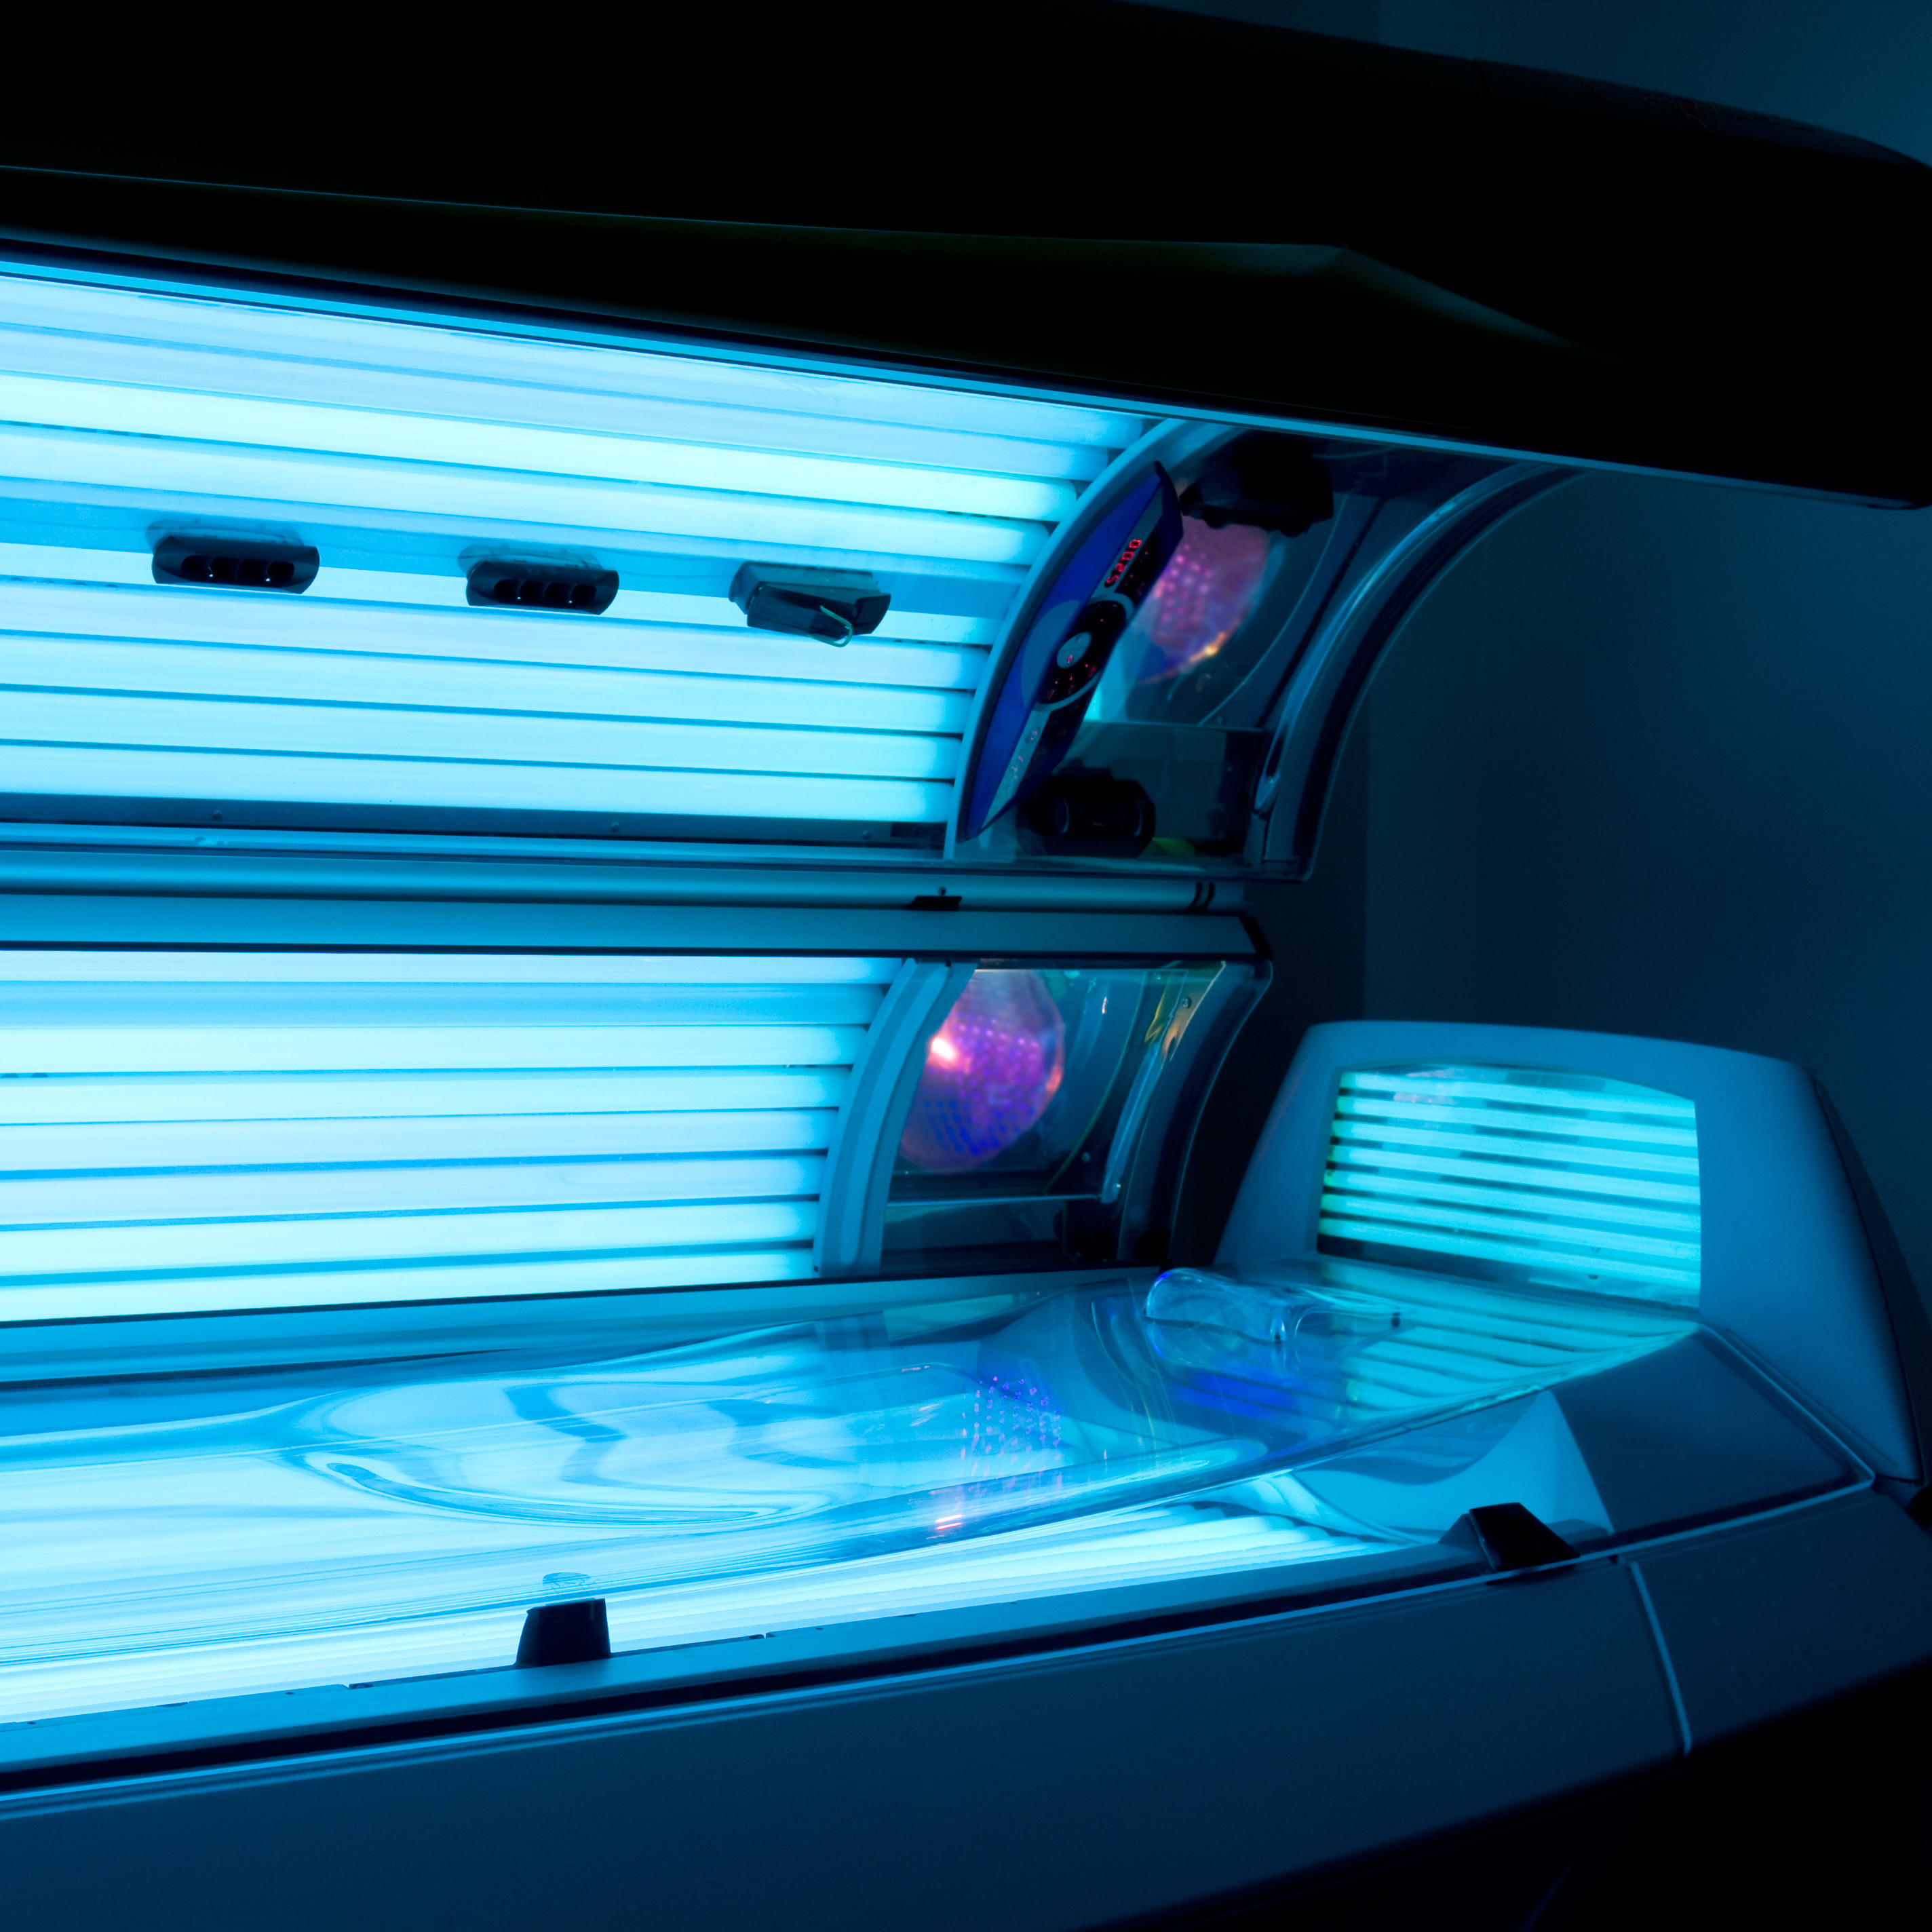 Many Tanning Salons Not Compliant With State Laws, Study Finds